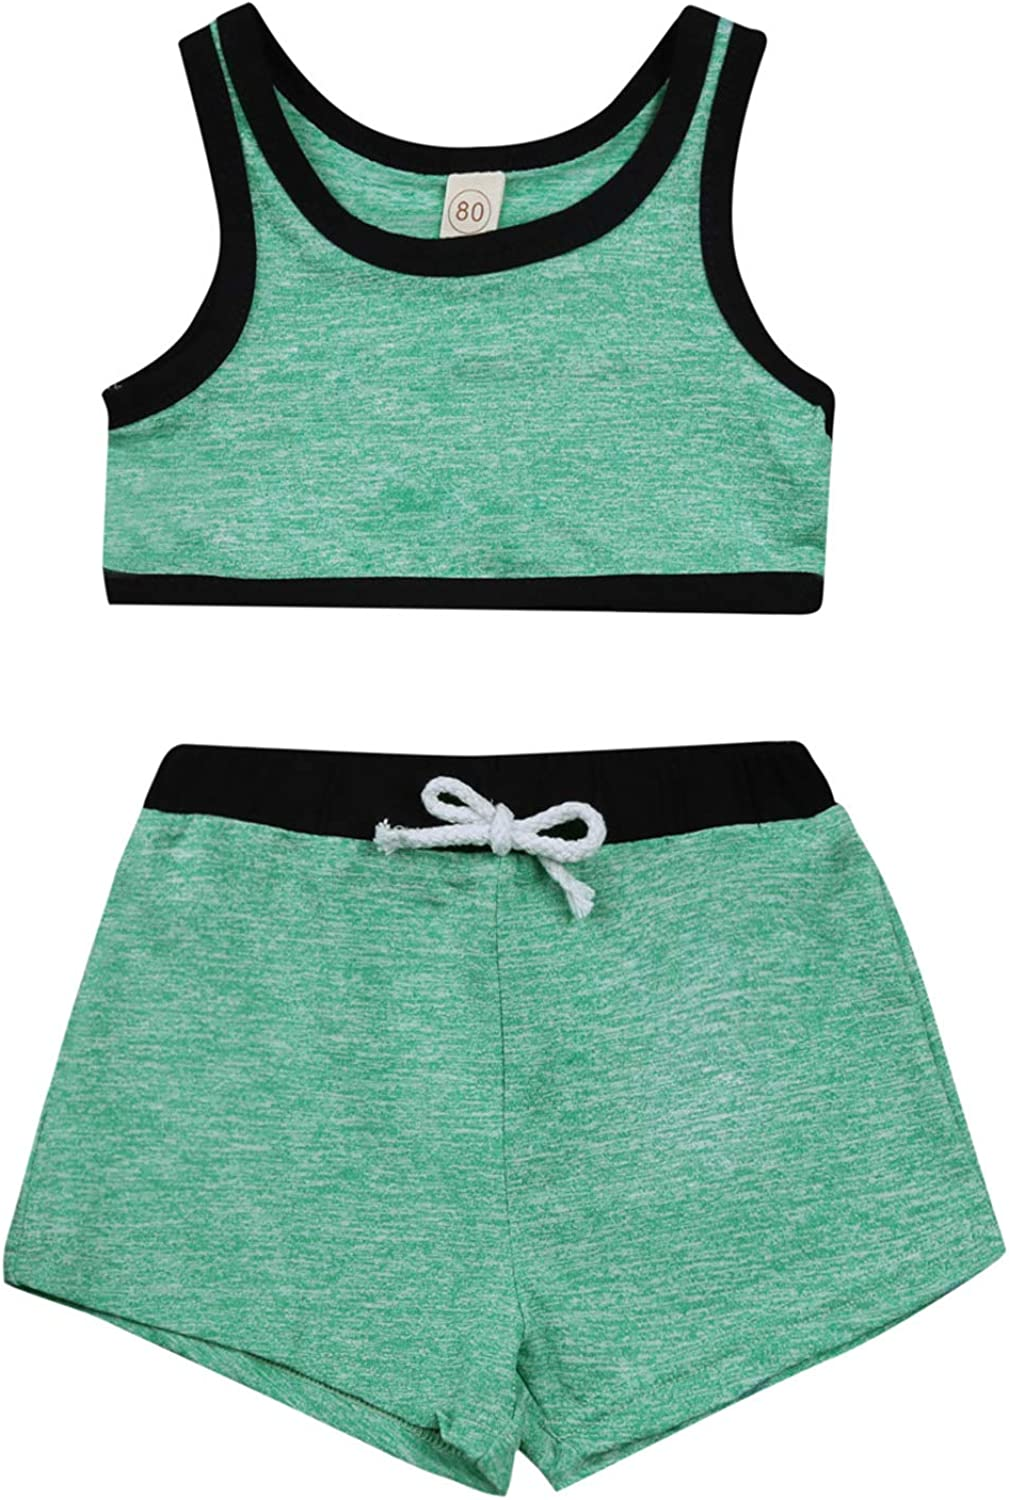 Mubineo Toddler Girl 2PCS Gym Workout Tank Tops Short Sets Sport Yoga Athletic Wear Outfits